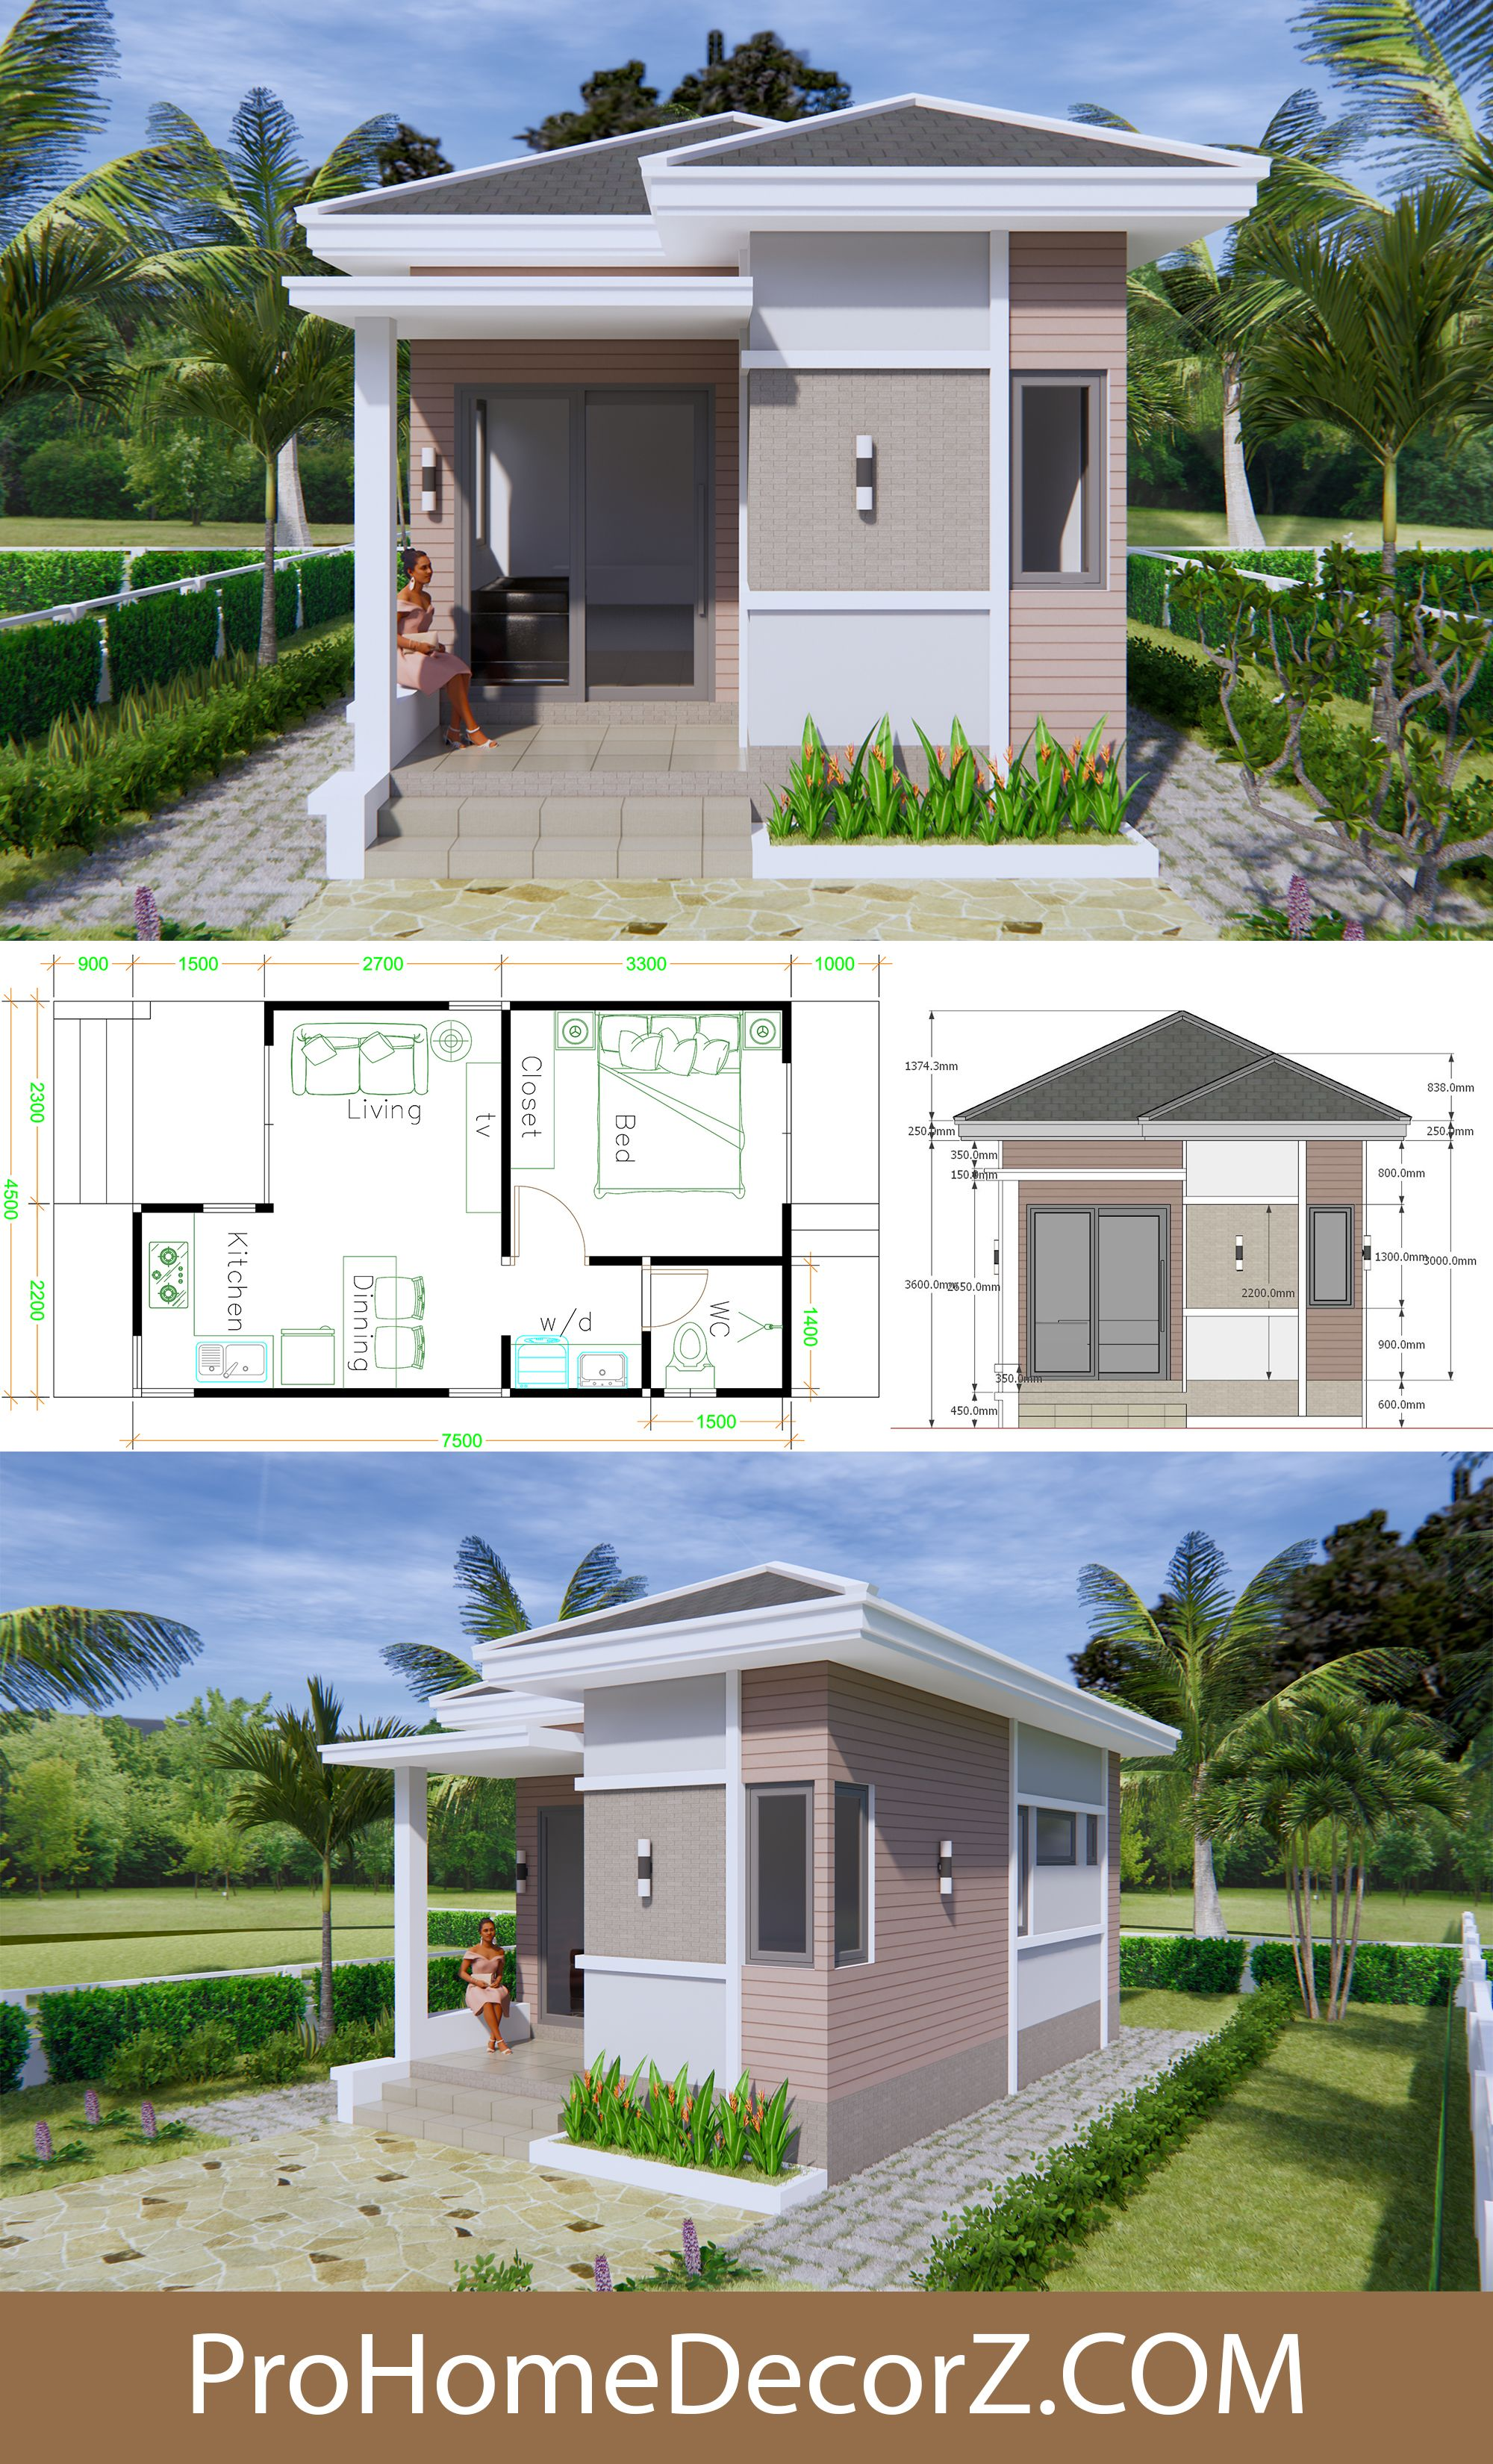 Small Family Home 4 5x7 5 With Hip Roof In 2020 Small Luxury Homes Luxury Homes Simple House Plans